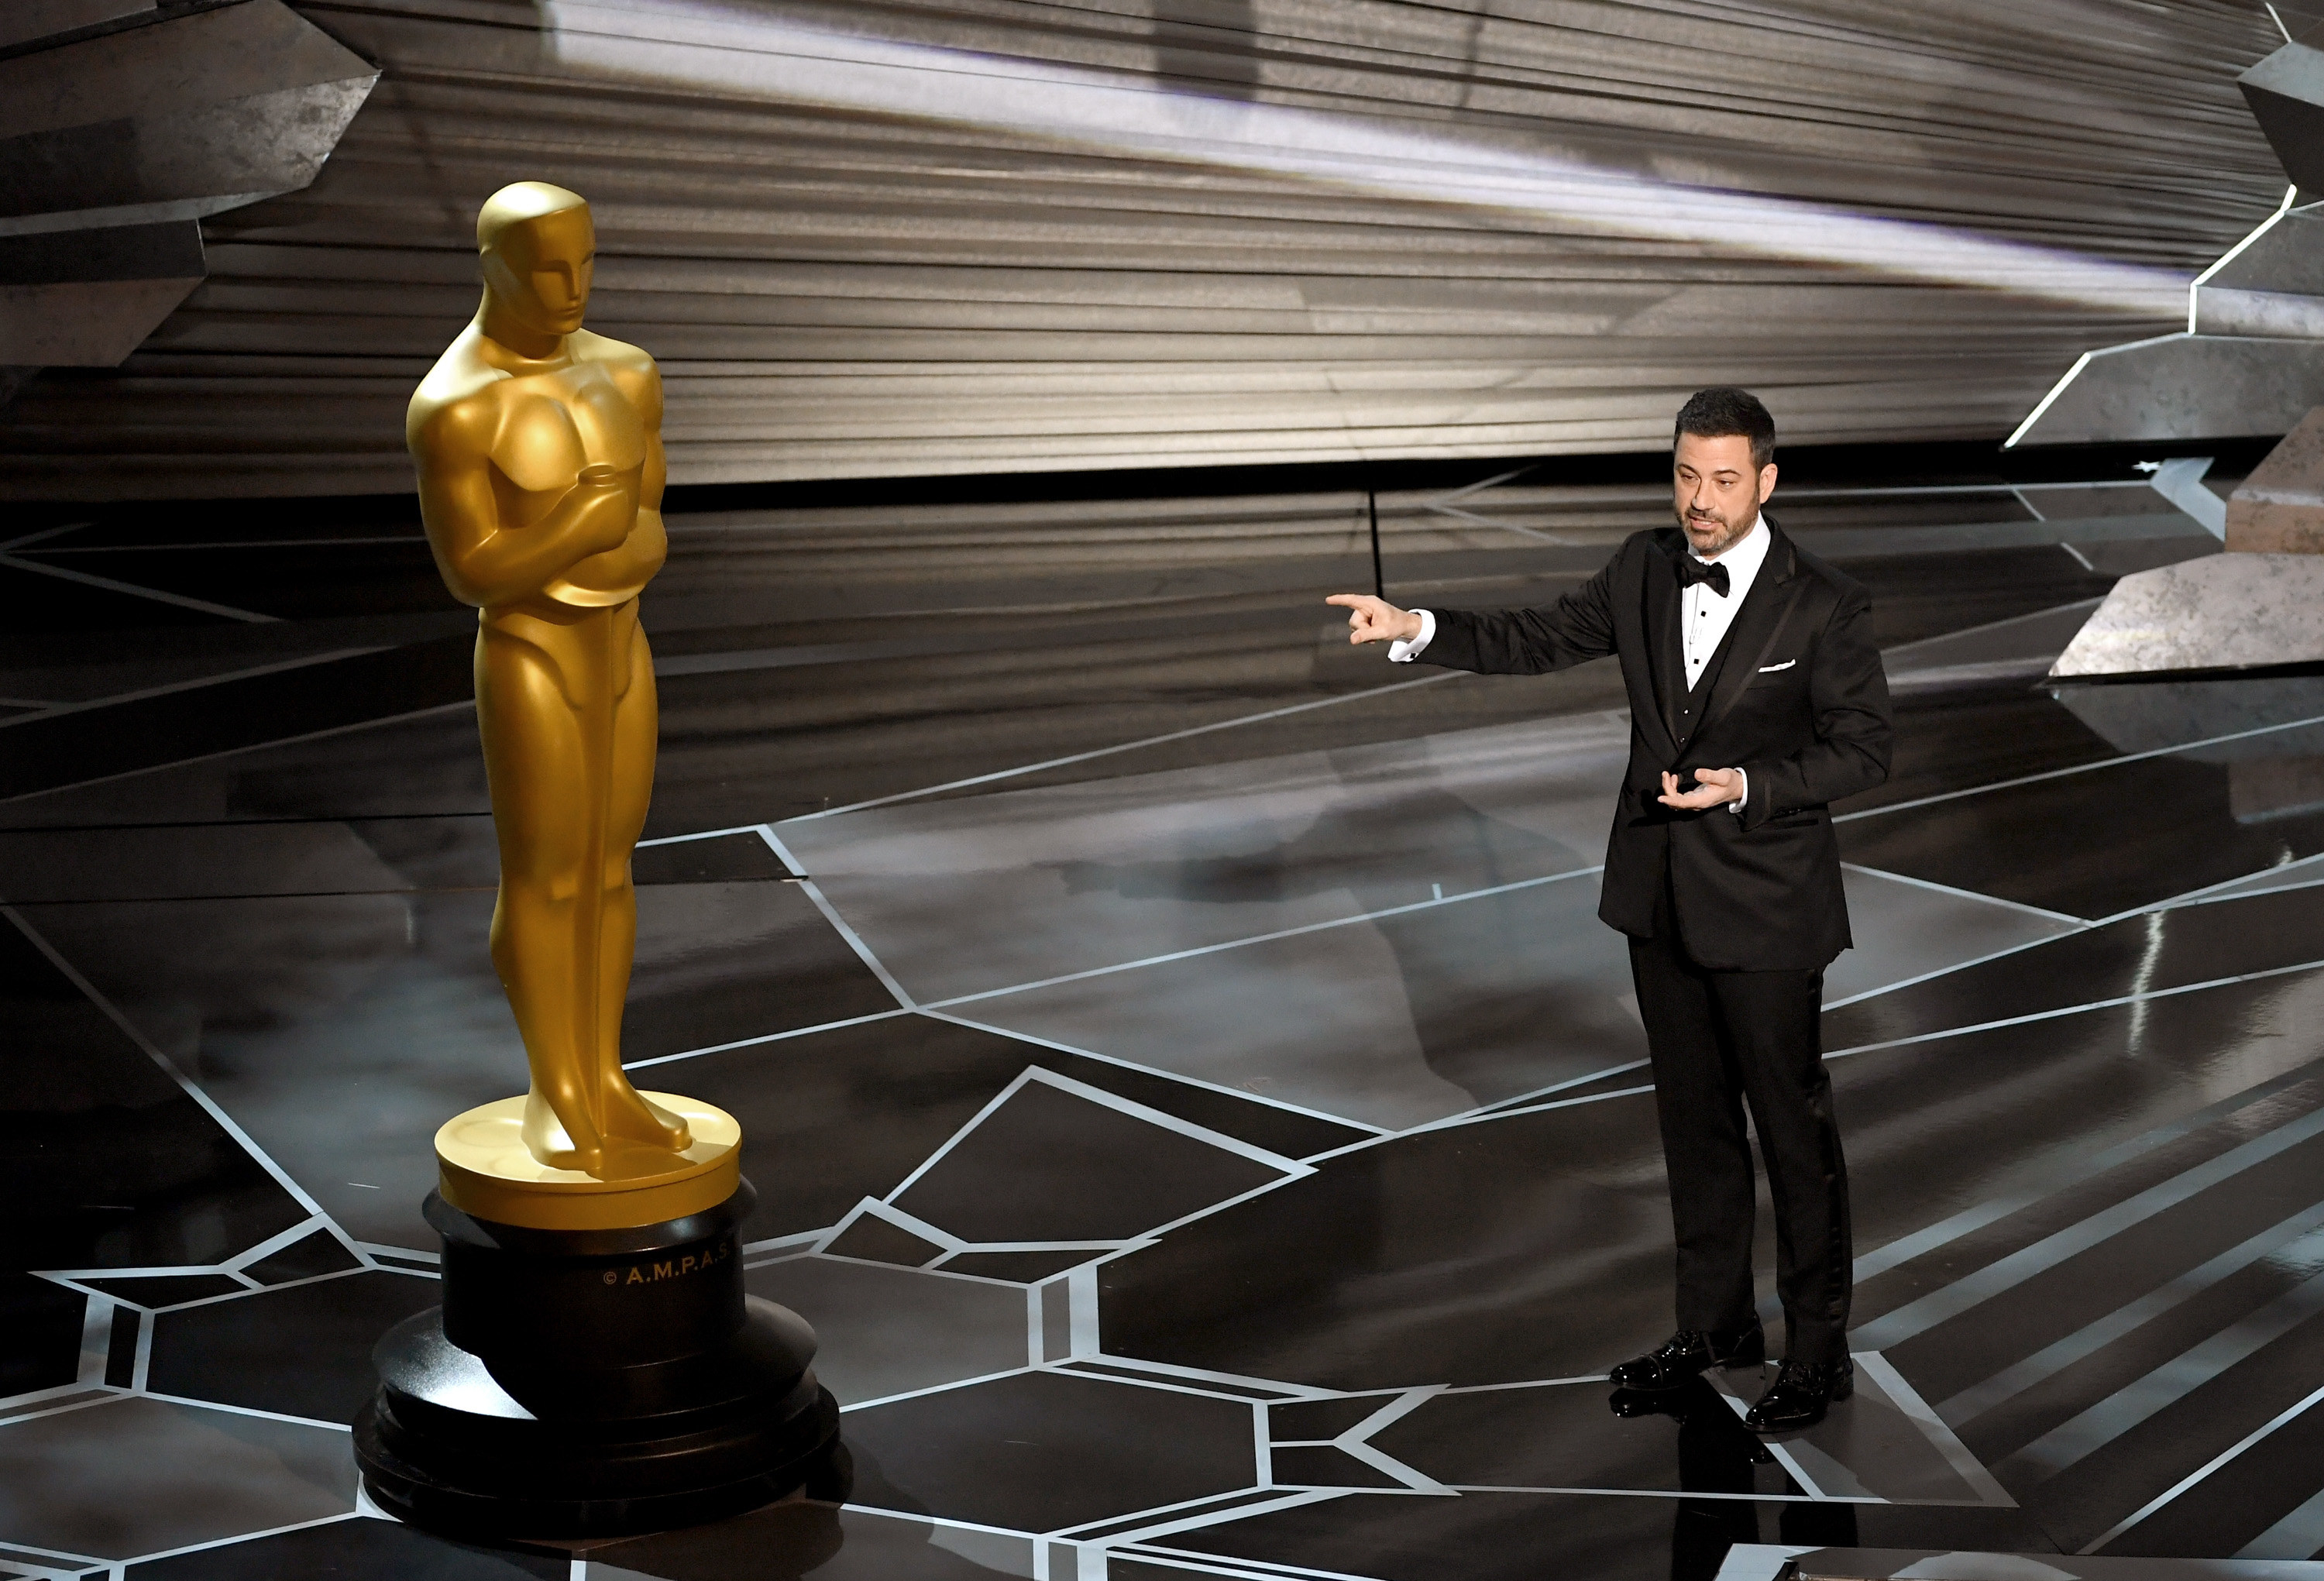 Jimmy Kimmel onstage at a previous Oscars